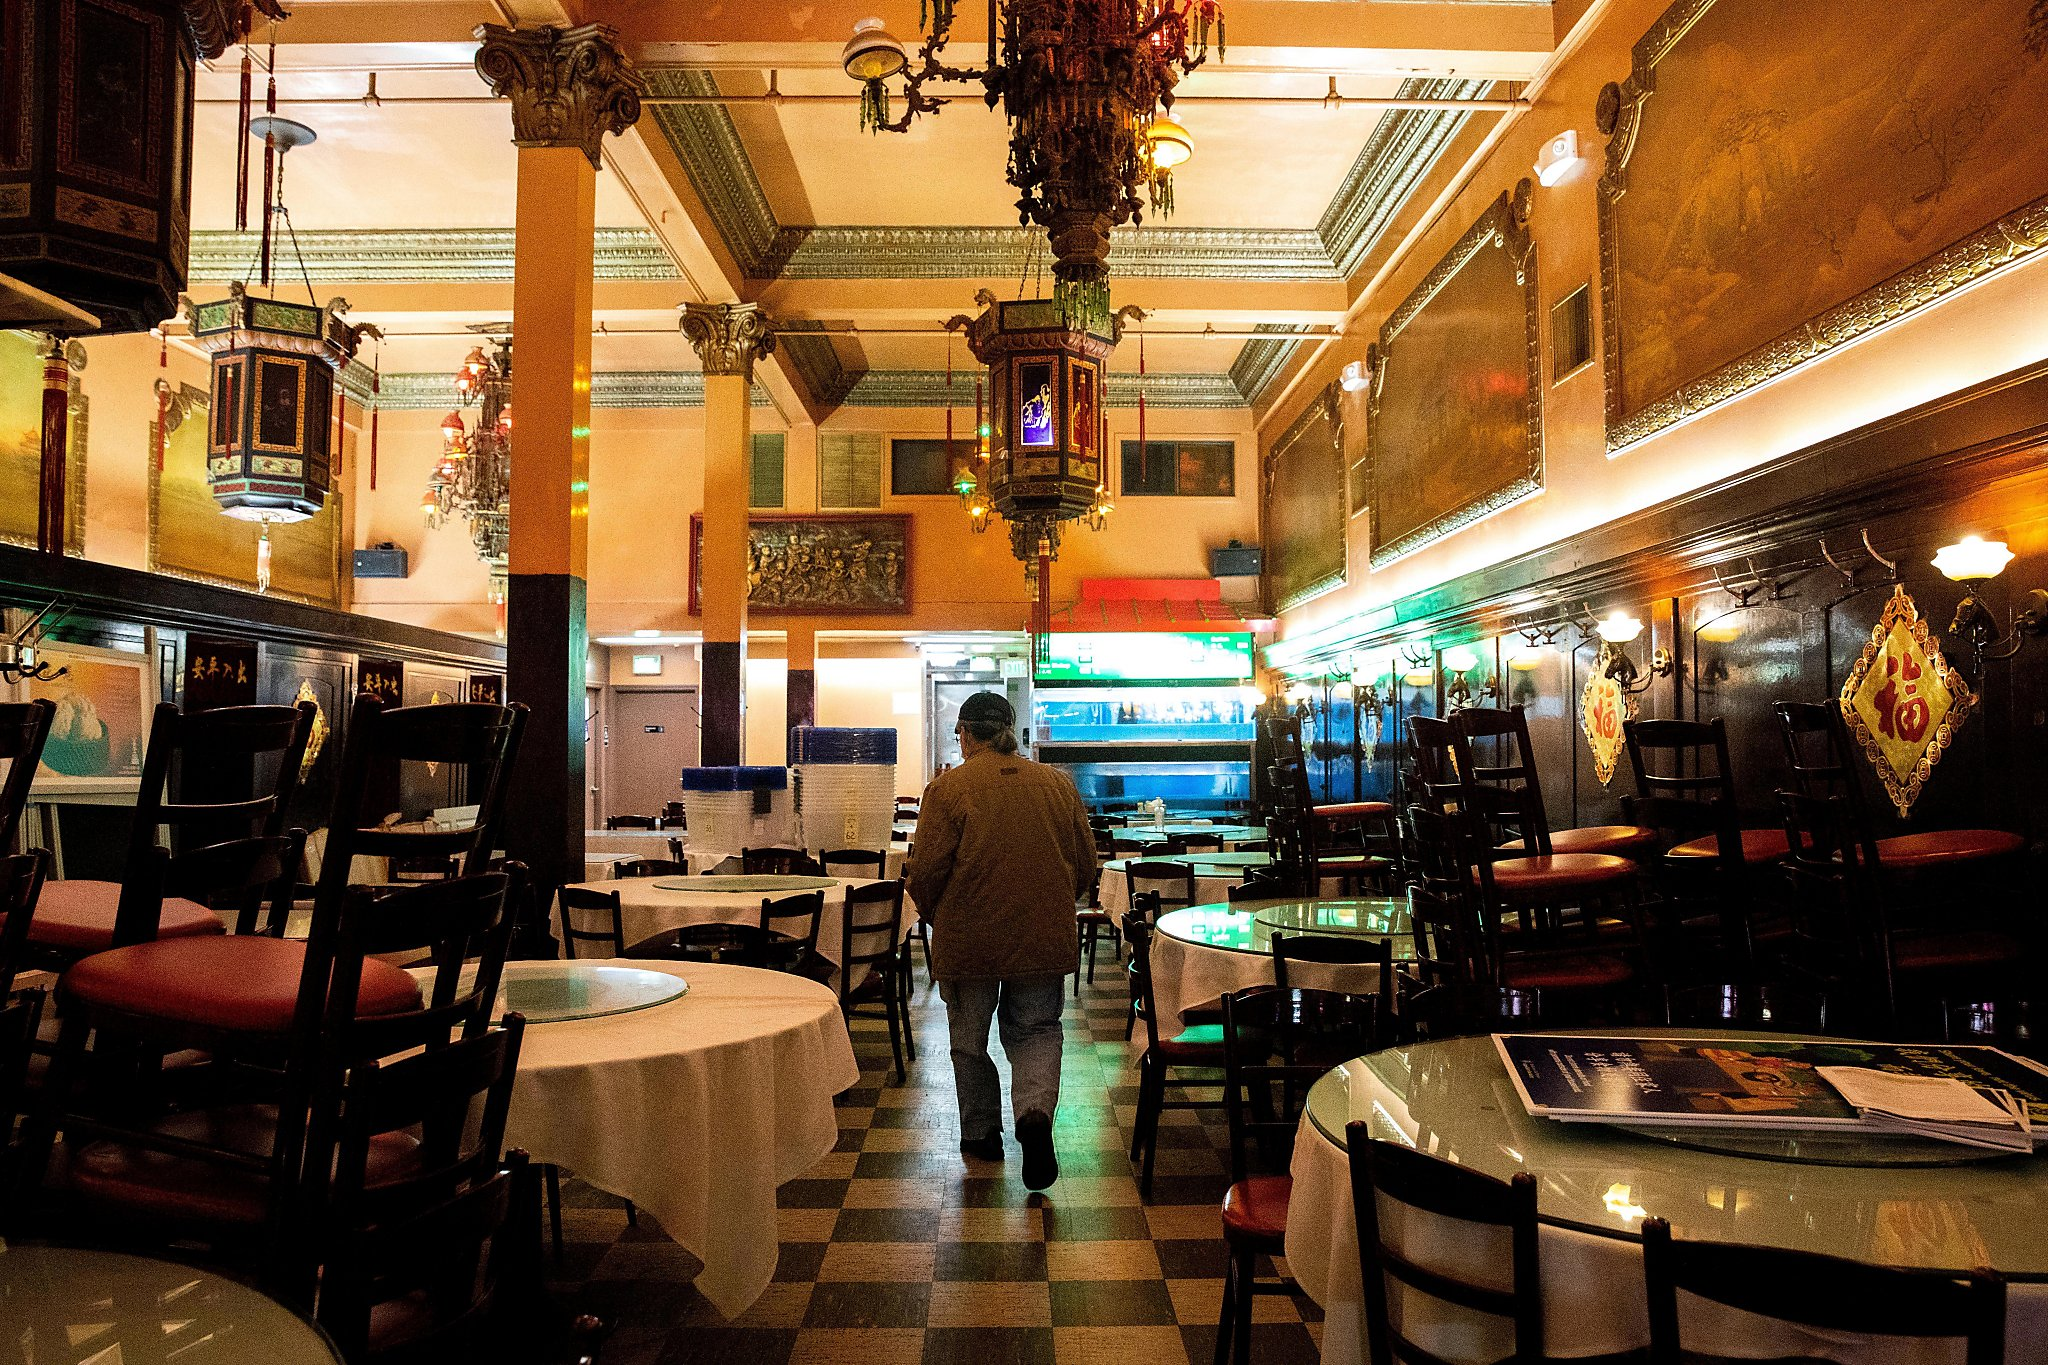 www.sfchronicle.com: The last stand of S.F. Chinatown's storied banquet halls